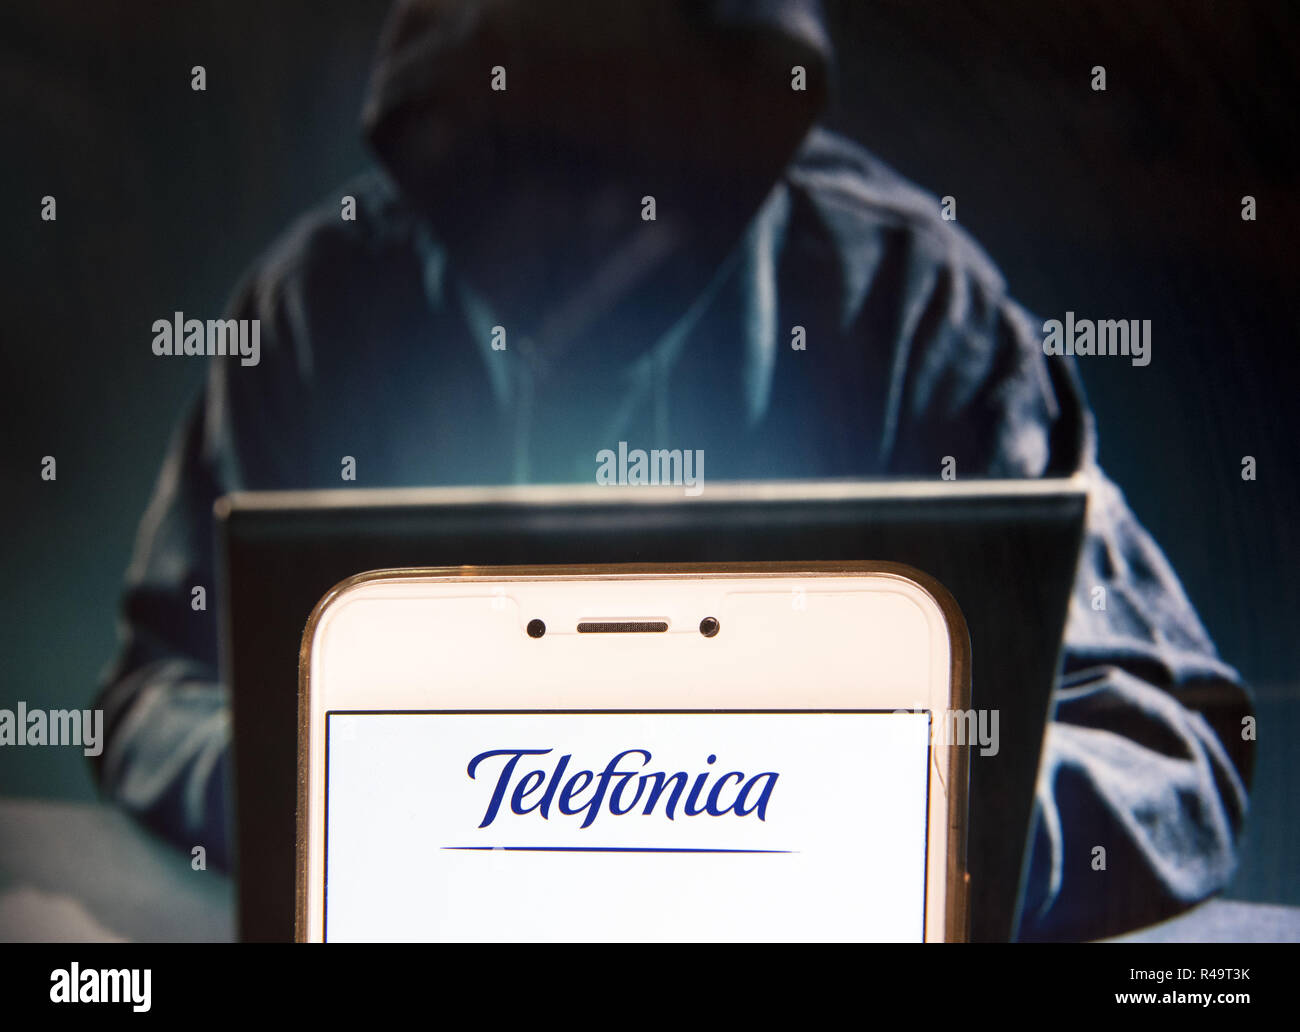 Hong Kong. 23rd Nov, 2018. Spanish multinational telecommunications company Telefonica logo is seen on an Android mobile device with a figure of hacker on the background. Credit: Miguel Candela/SOPA Images/ZUMA Wire/Alamy Live News - Stock Image